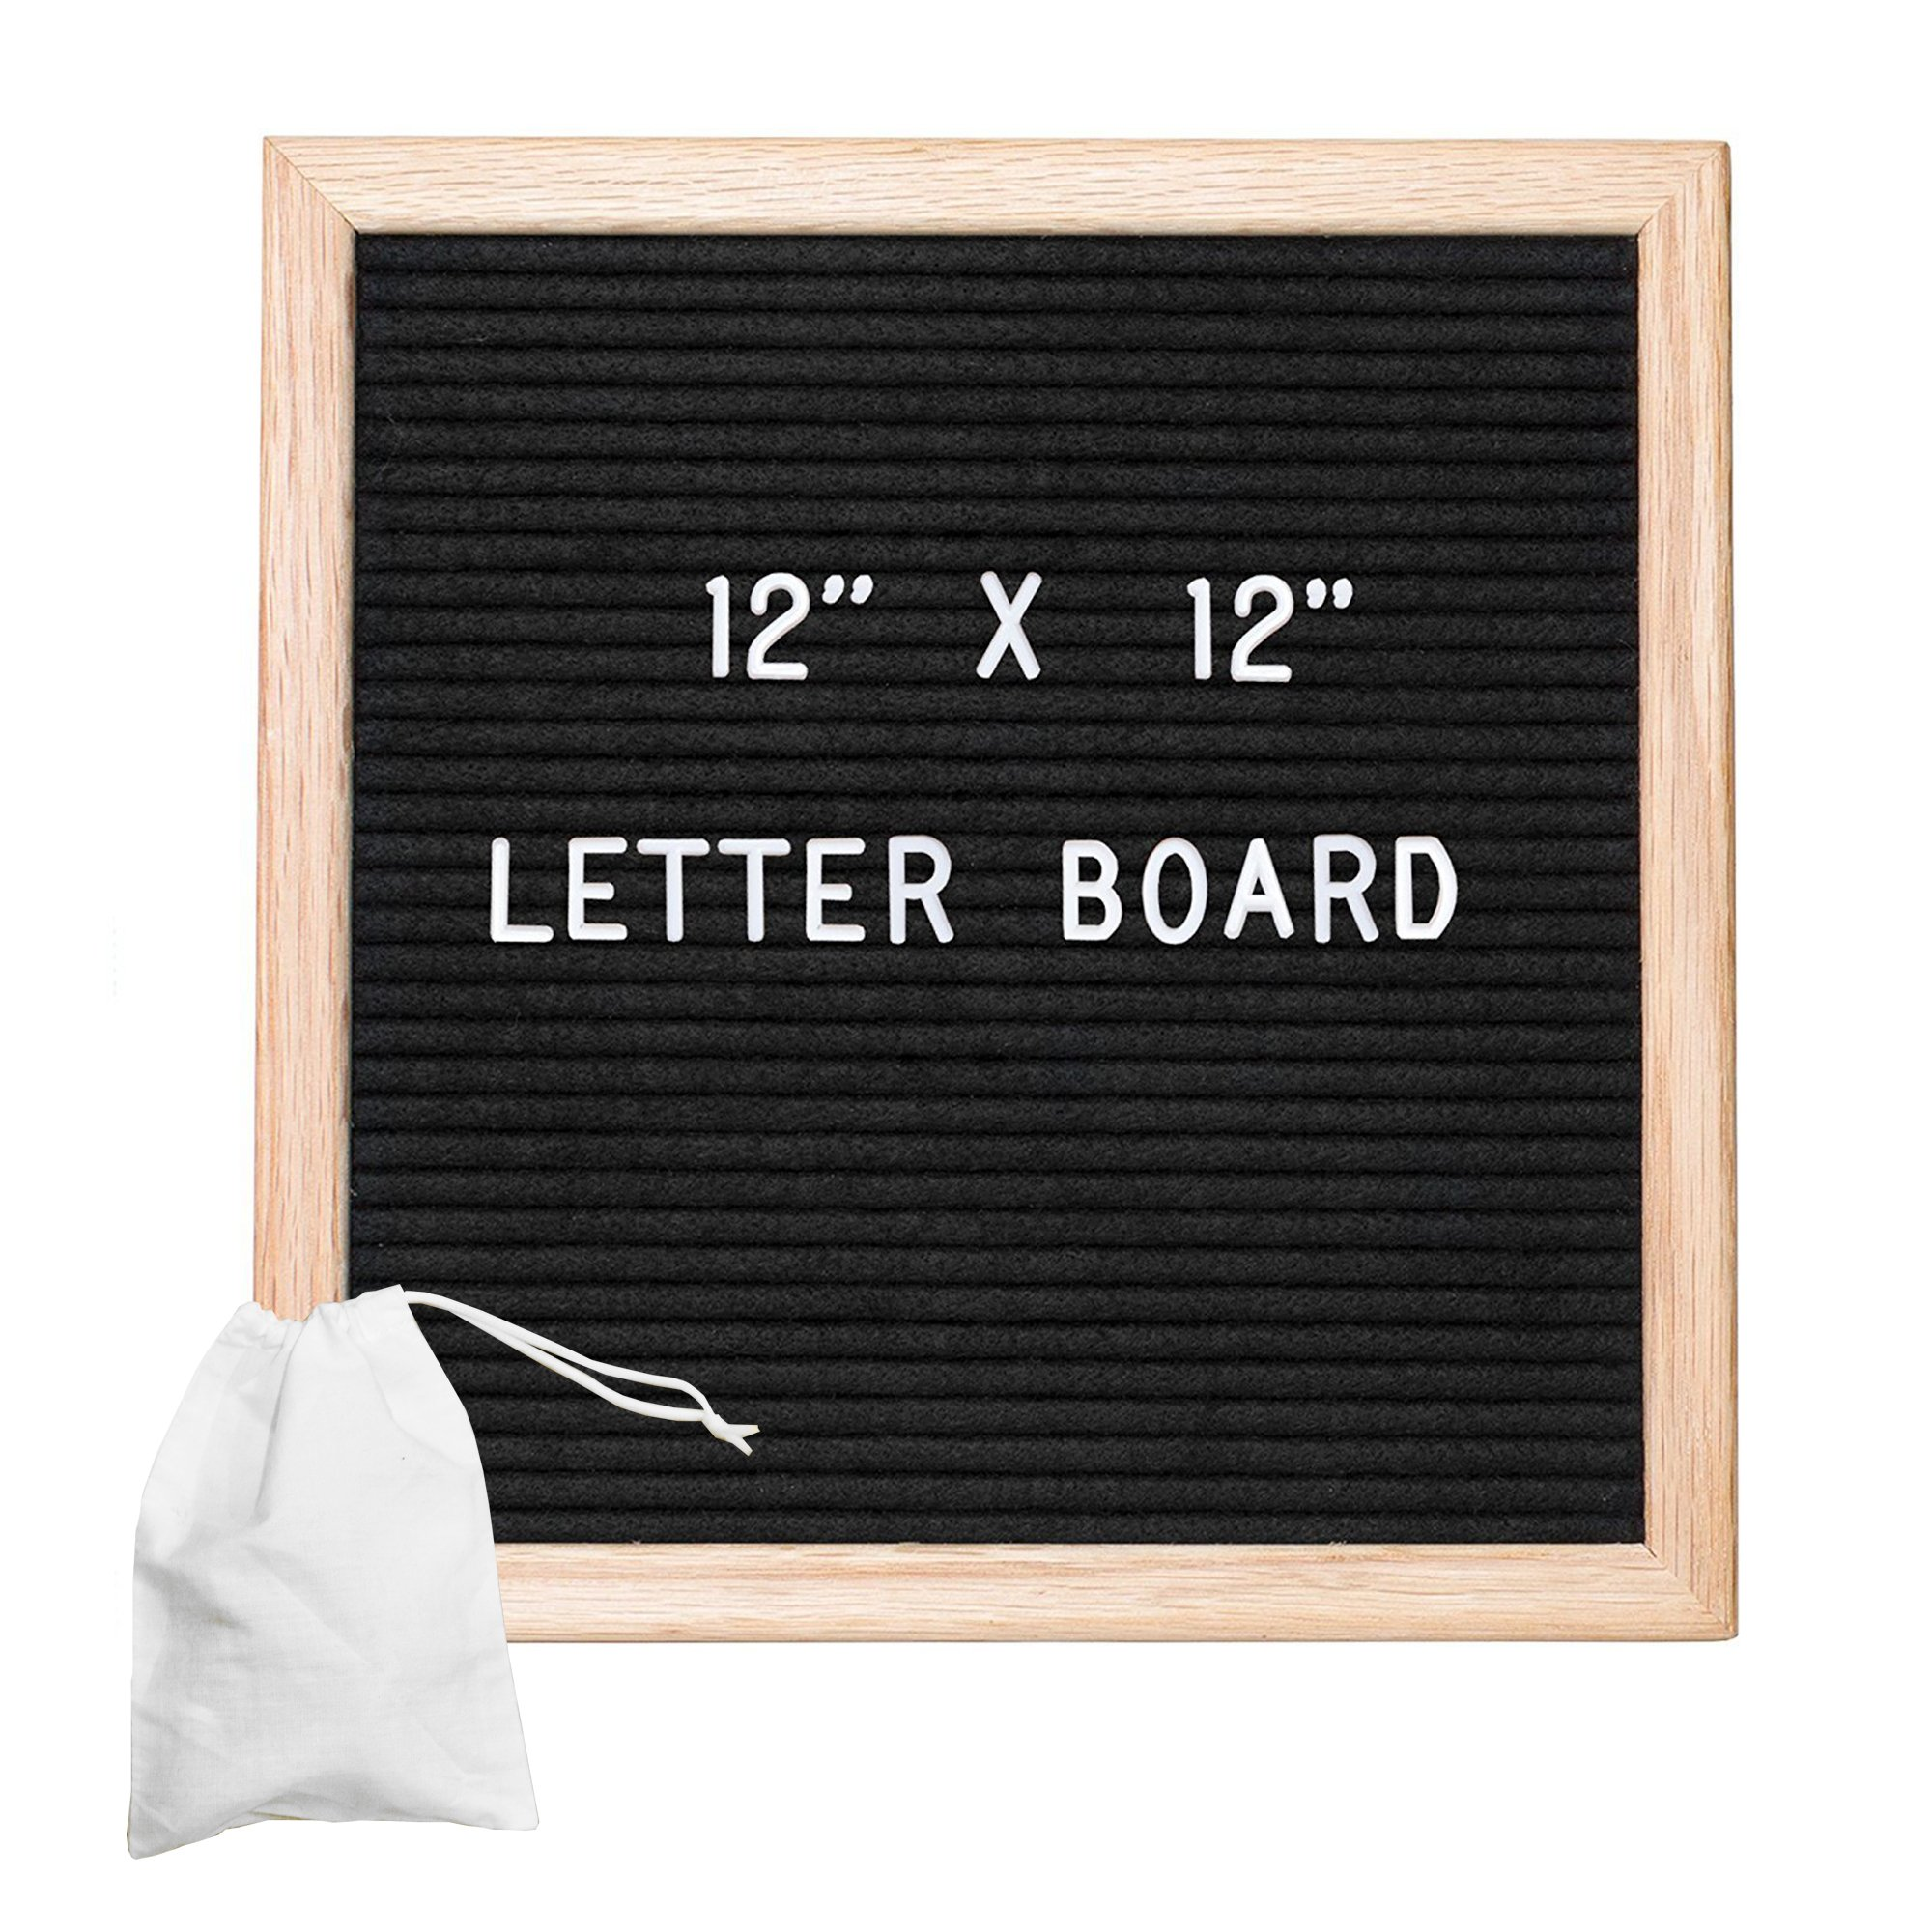 Felt Letter Board with 650 Letters, Numbers & Symbols - 12x12 inch Changeable Message Board with Oak Wooden Frame,Plus Free Letter Bag